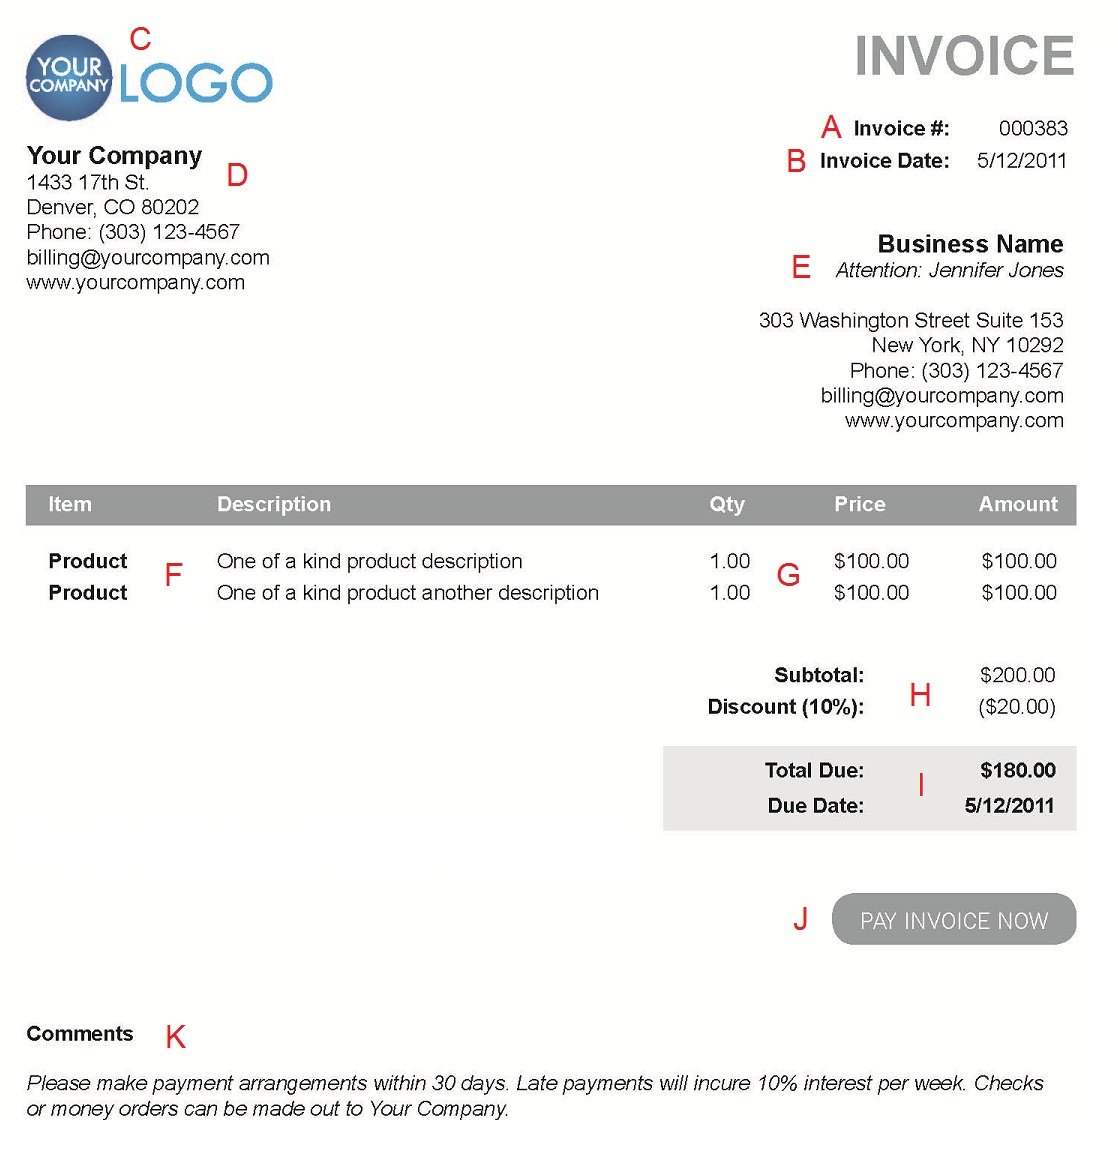 Opposenewapstandardsus  Inspiring The  Different Sections Of An Electronic Payment Invoice With Inspiring A  With Awesome Electrician Invoice Template Also Adp Online Invoice In Addition Best Invoice Software For Small Business And Create A Paypal Invoice As Well As Invoice Price Calculator Additionally How To Find Invoice Price Of A New Car From Paysimplecom With Opposenewapstandardsus  Inspiring The  Different Sections Of An Electronic Payment Invoice With Awesome A  And Inspiring Electrician Invoice Template Also Adp Online Invoice In Addition Best Invoice Software For Small Business From Paysimplecom